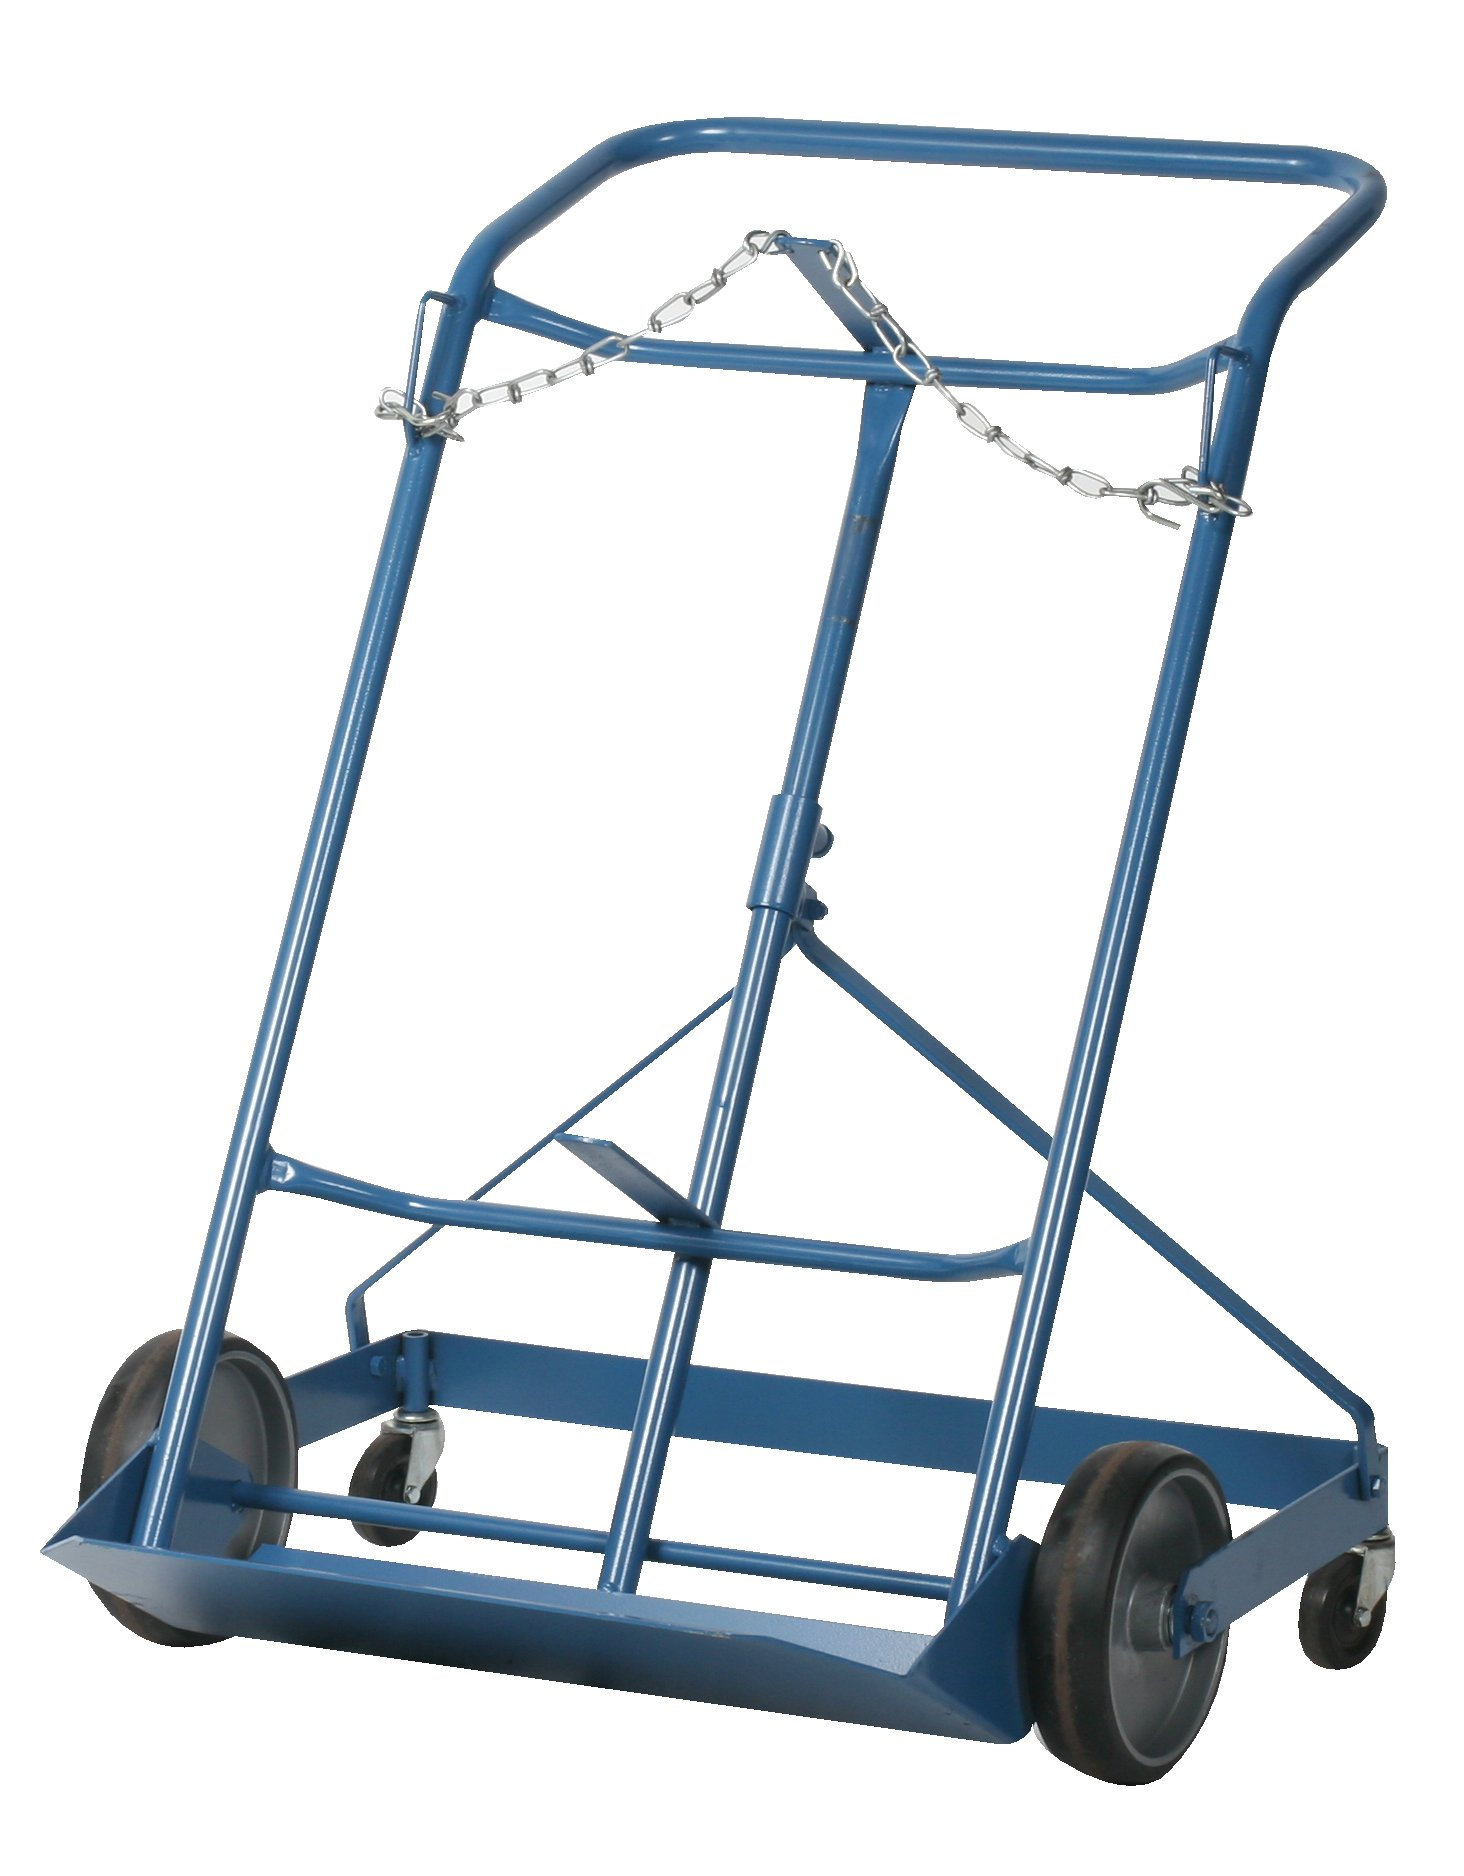 Wesco 210124 Professional Series Steel Cylinder 4-Wheel Hand Truck, Moldon Rubber Wheels, 500-lb.Load Capacity, 29'' Width x 42.25'' Height x 18.5'' Depth